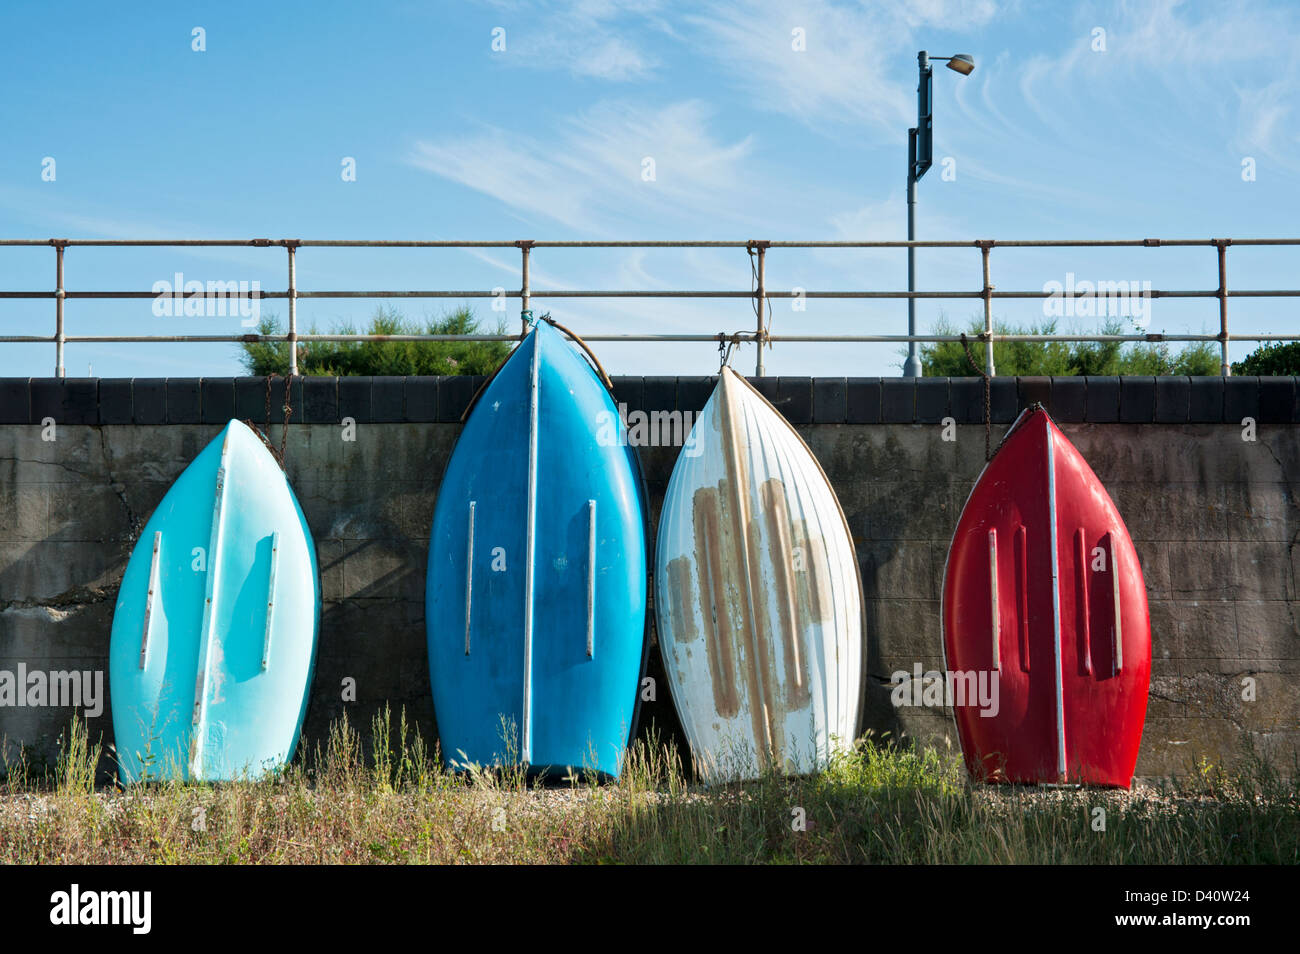 Colorful Boats at Southend, Essex, UK - Stock Image